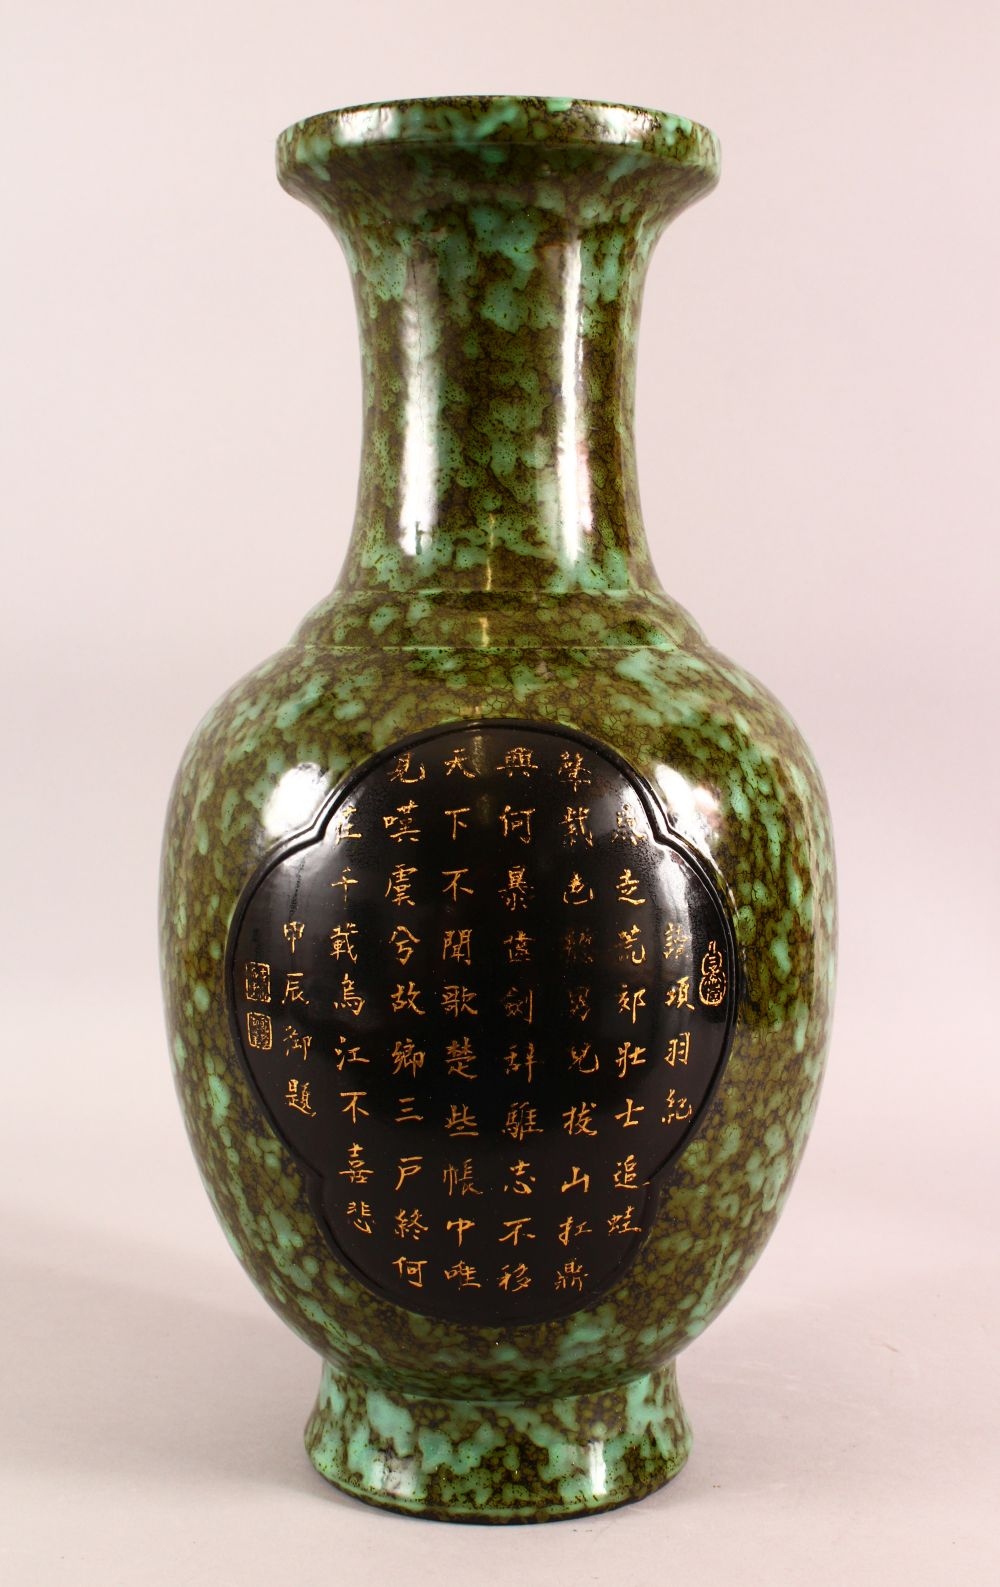 A CHINESE UNUSUAL GREEN GROUND VASE, the body with panels of calligraphic script, the base with four